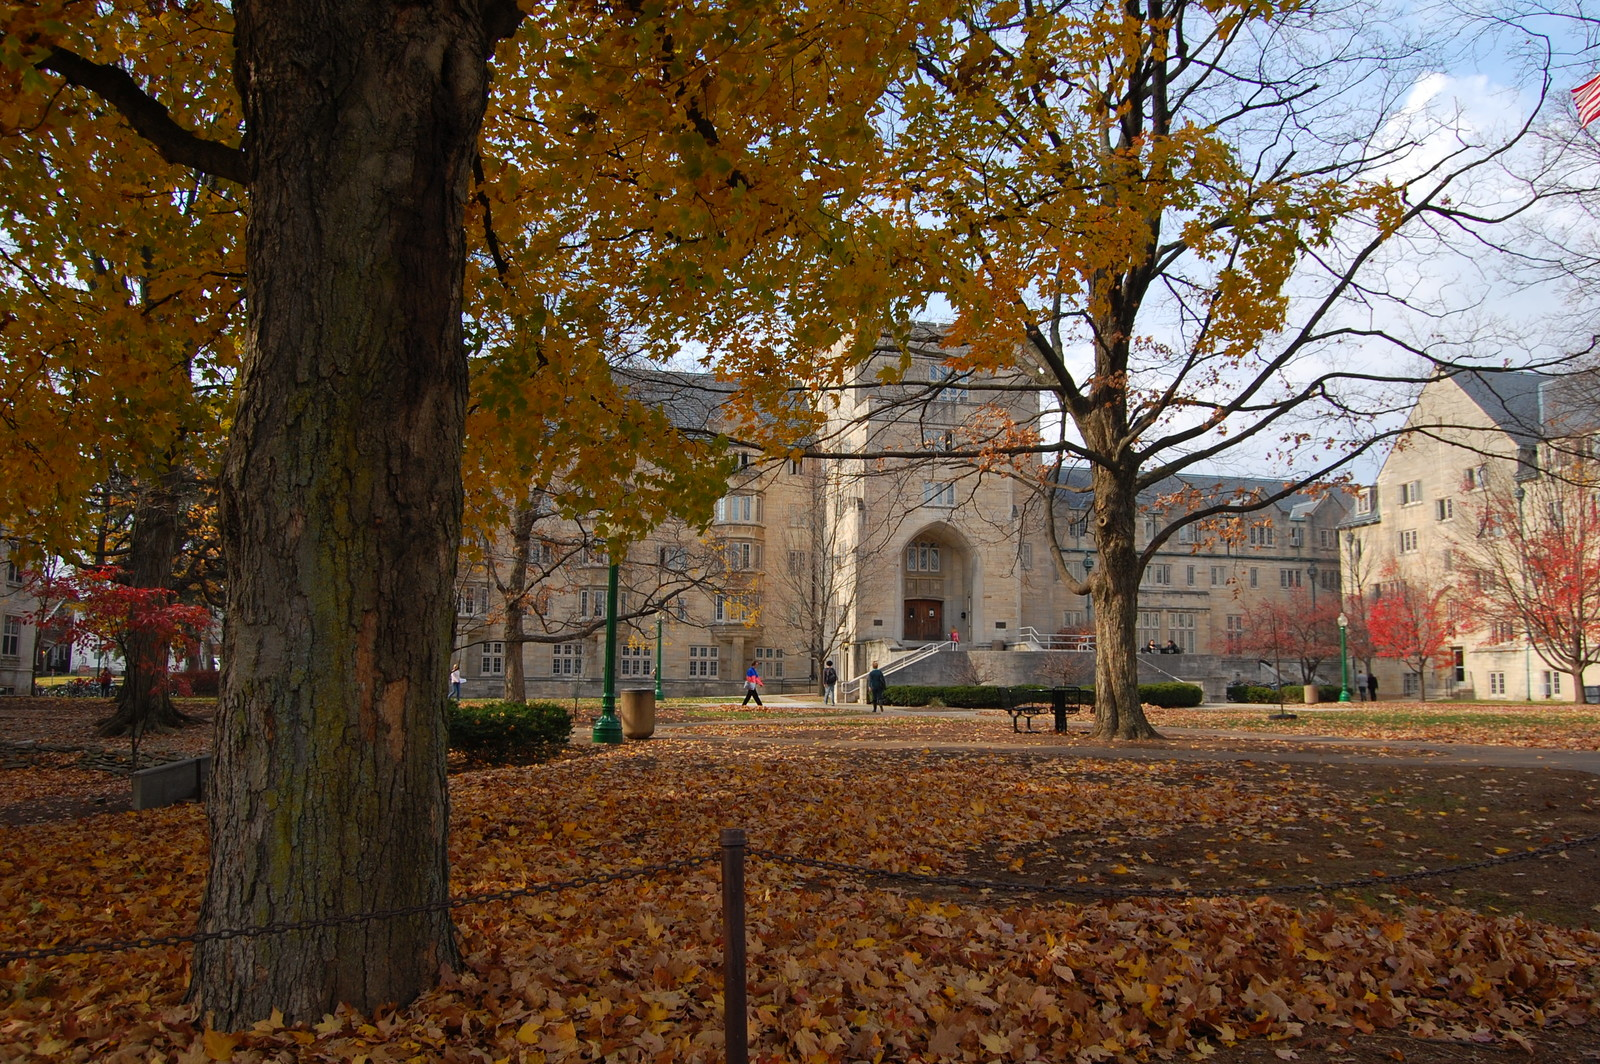 Indiana University Bloomington Campus in the fall with gold leaves littering the ground.